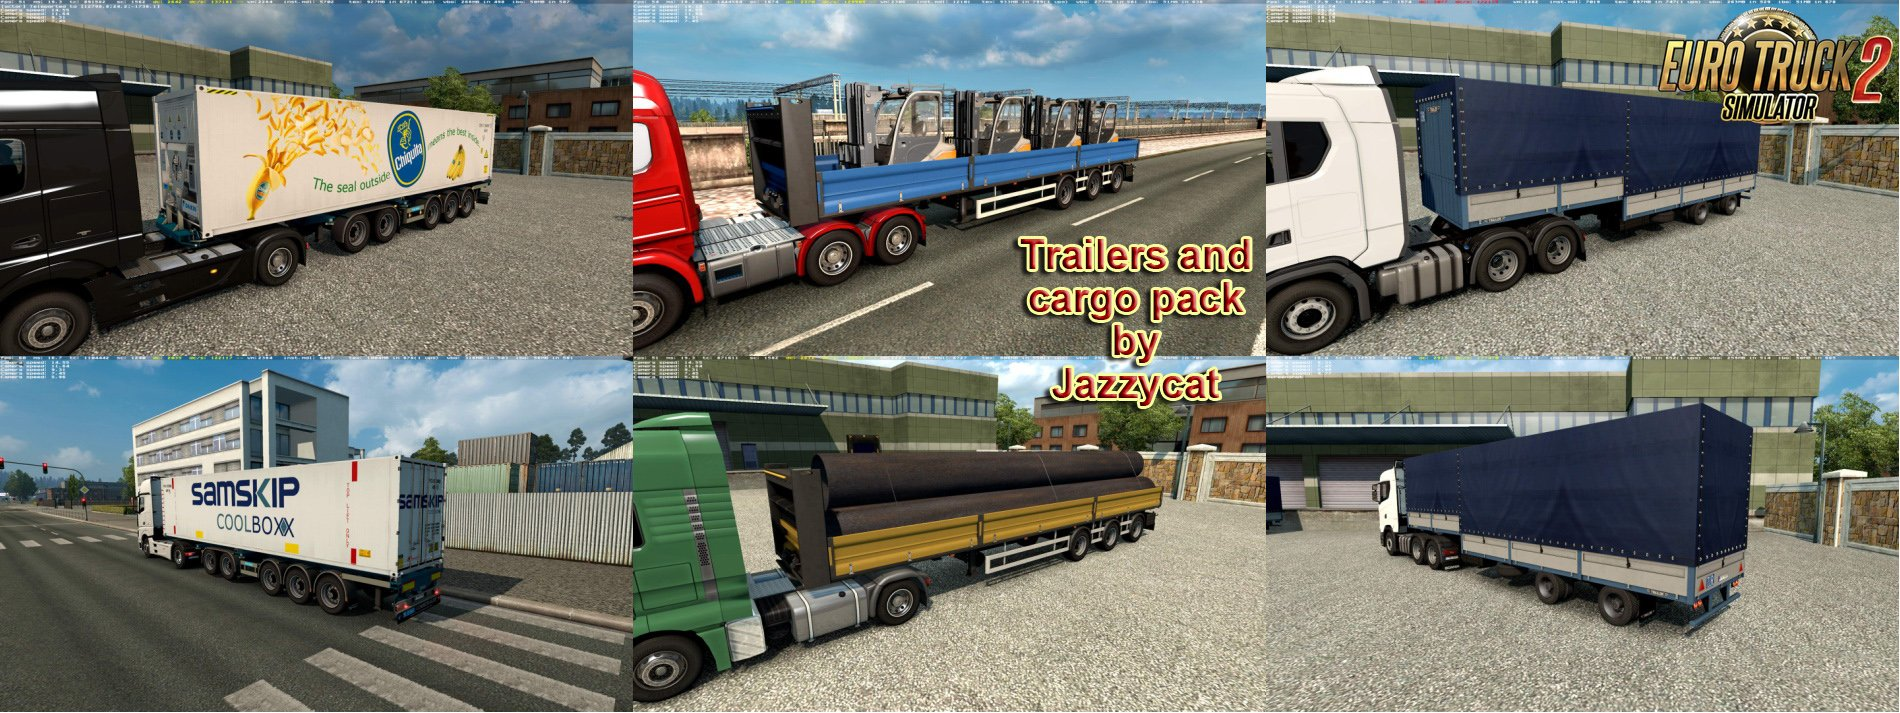 Trailers and Cargo Pack v6.1 by Jazzycat